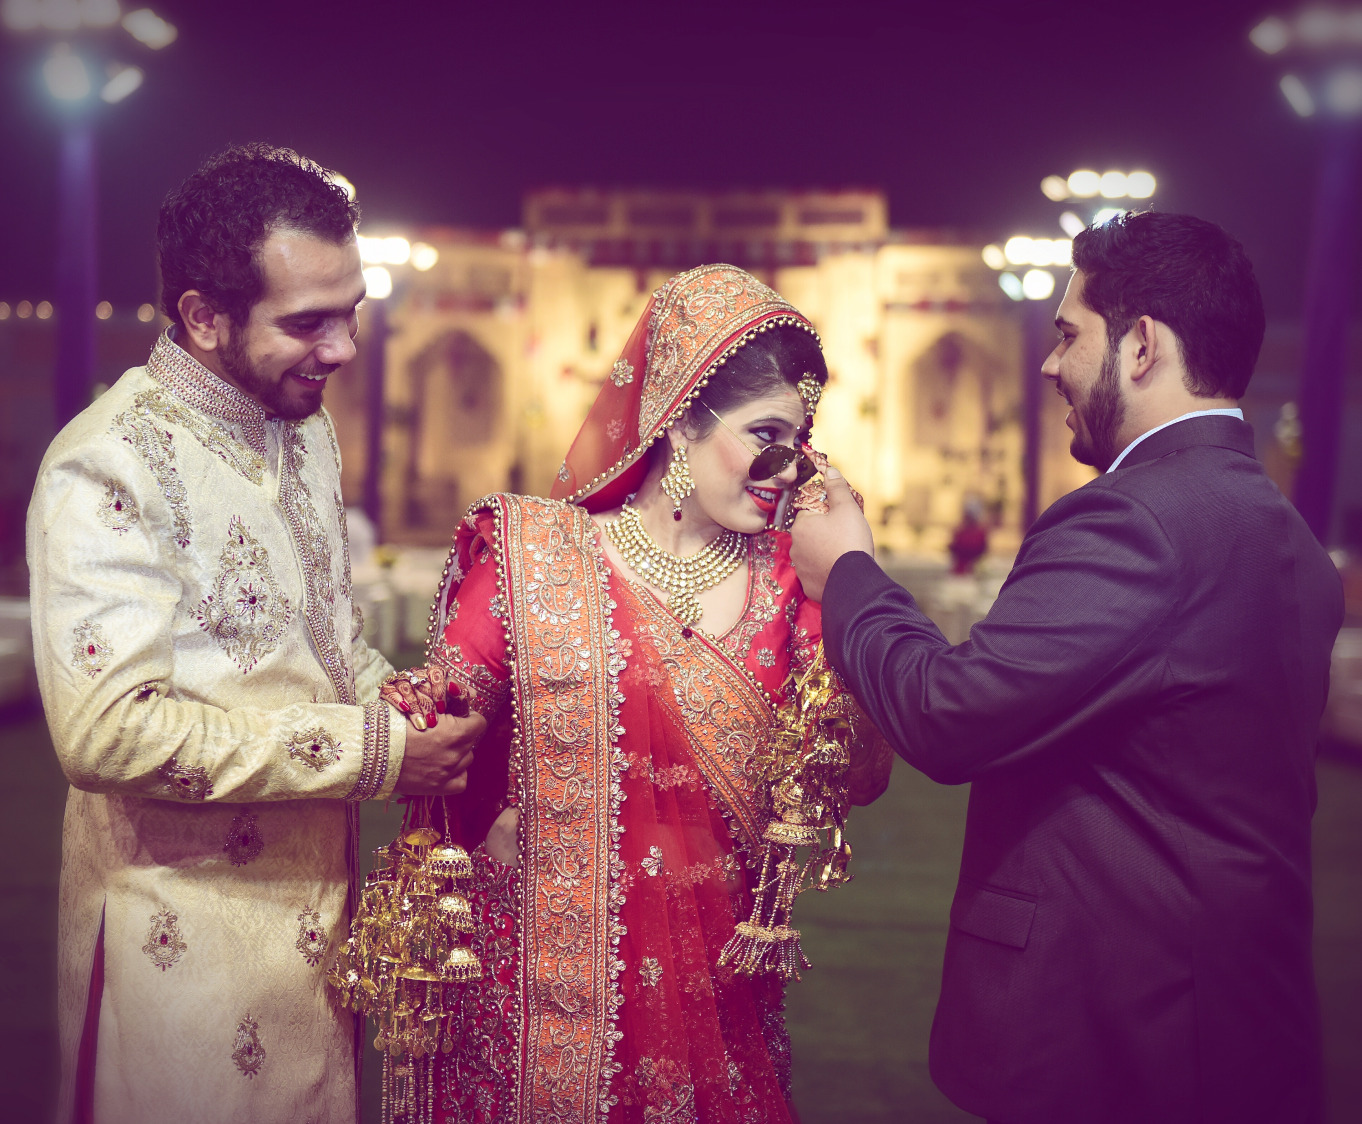 Bride Striking a Cool Pose With Wedding Guests by Himanshu Chauhan Wedding-photography | Weddings Photos & Ideas